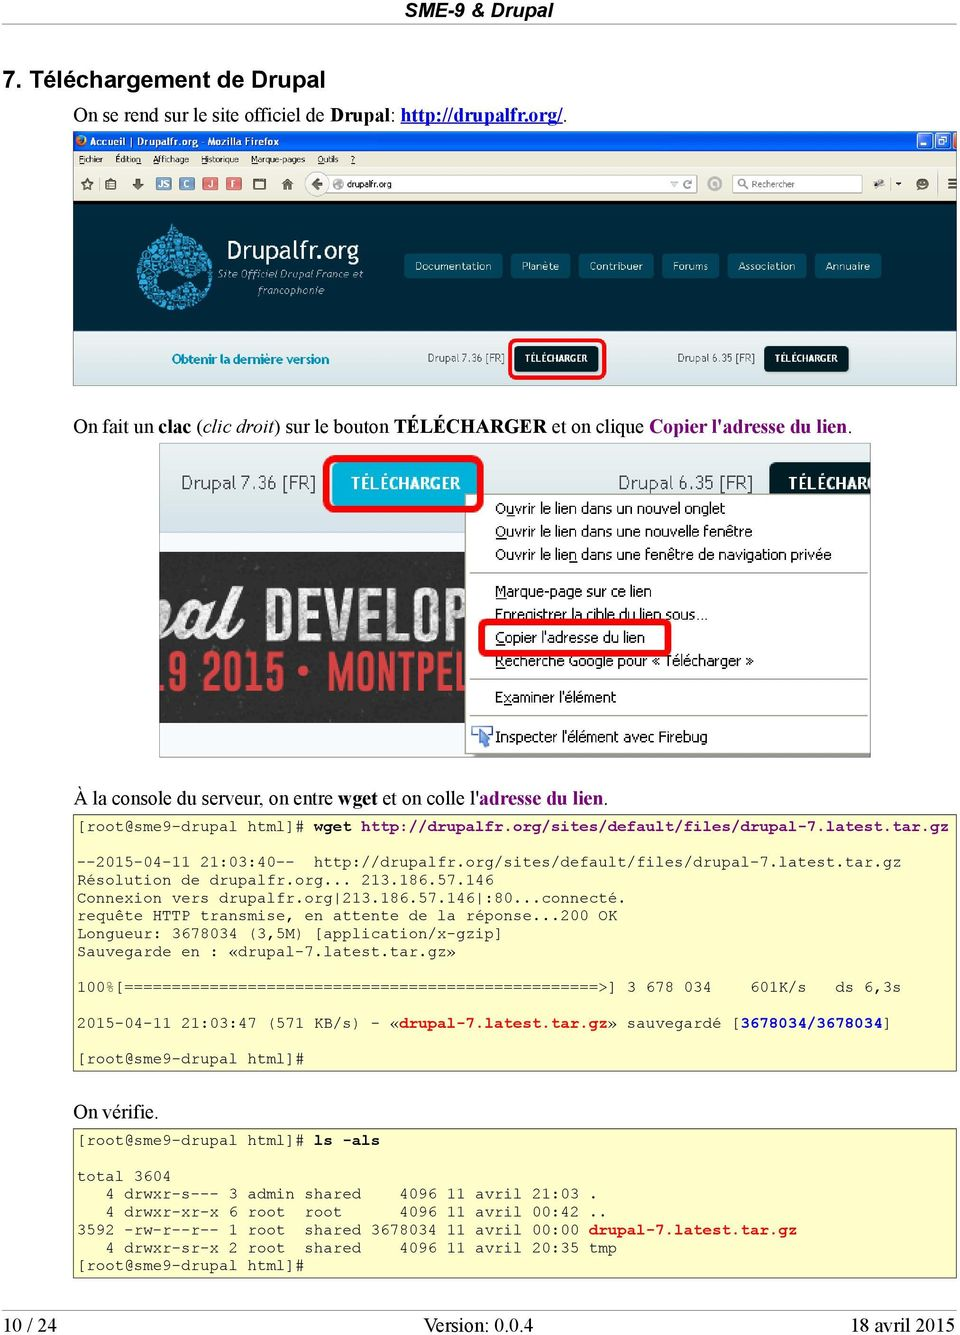 org/sites/default/files/drupal-7.latest.tar.gz --205-04- 2:03:40-- http://drupalfr.org/sites/default/files/drupal-7.latest.tar.gz Résolution de drupalfr.org... 23.86.57.46 Connexion vers drupalfr.